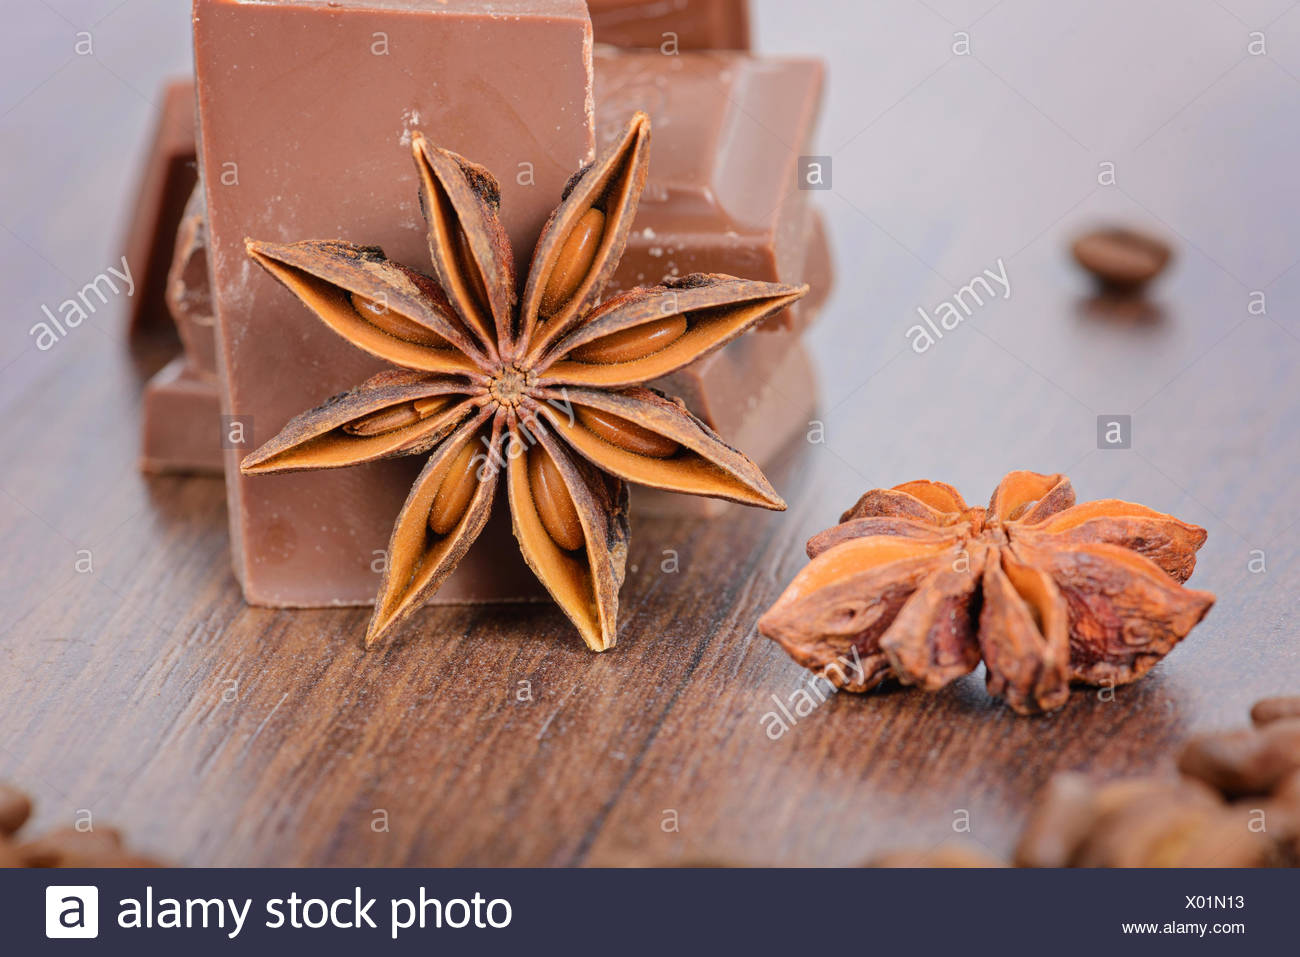 Milk chocolate, coffee beans and anise - Stock Image